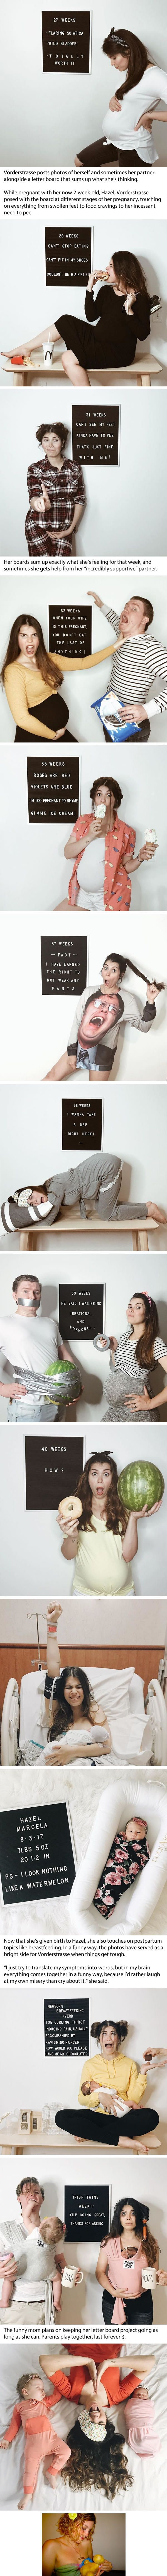 Mother Creates Hilarious Pregnancy Photos With Letter Board Messages